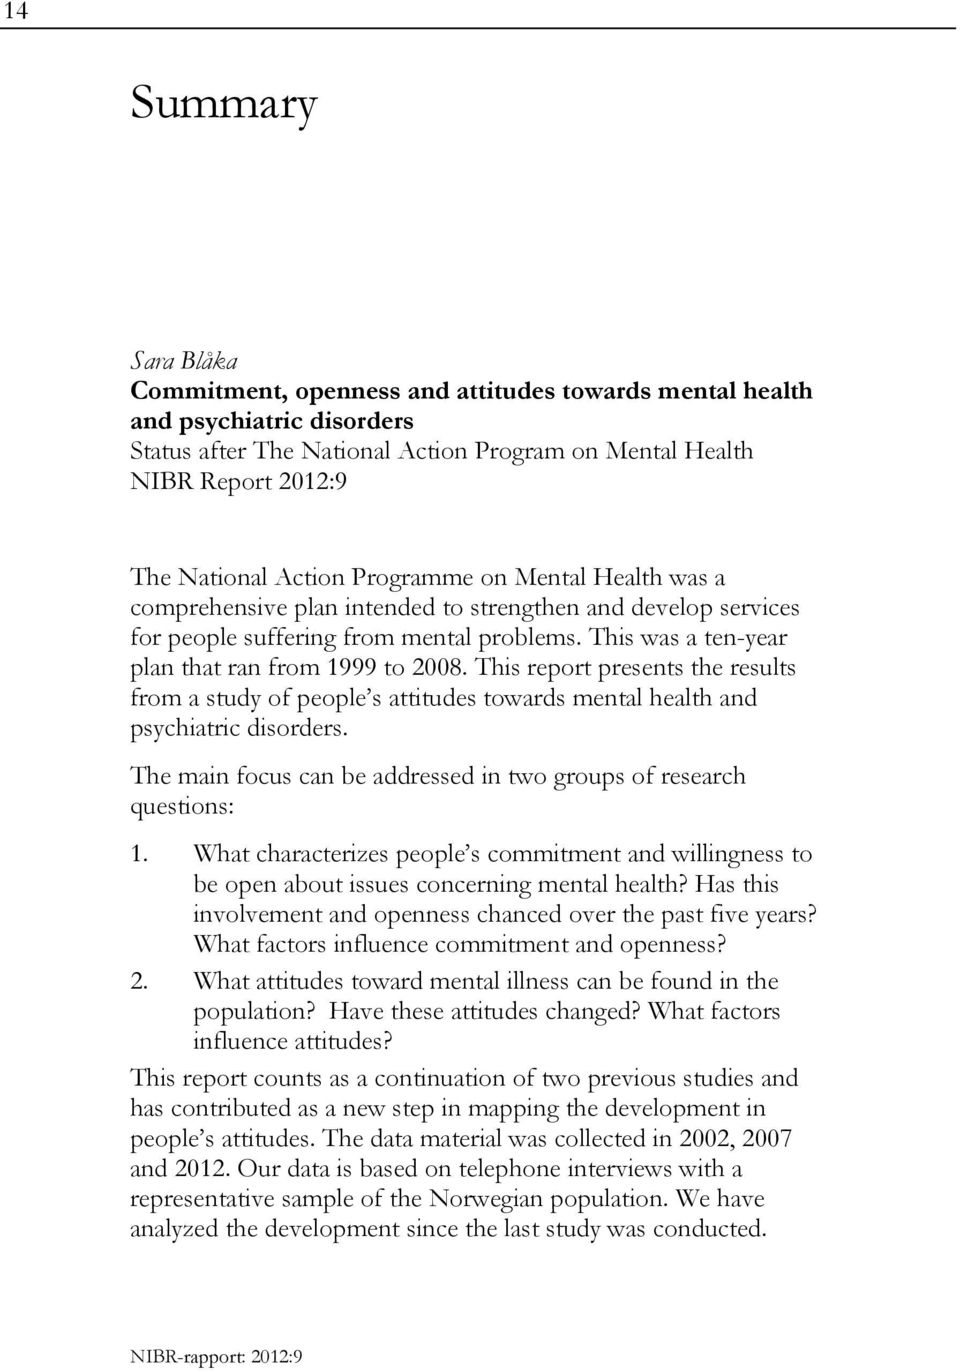 This report presents the results from a study of people s attitudes towards mental health and psychiatric disorders. The main focus can be addressed in two groups of research questions: 1.